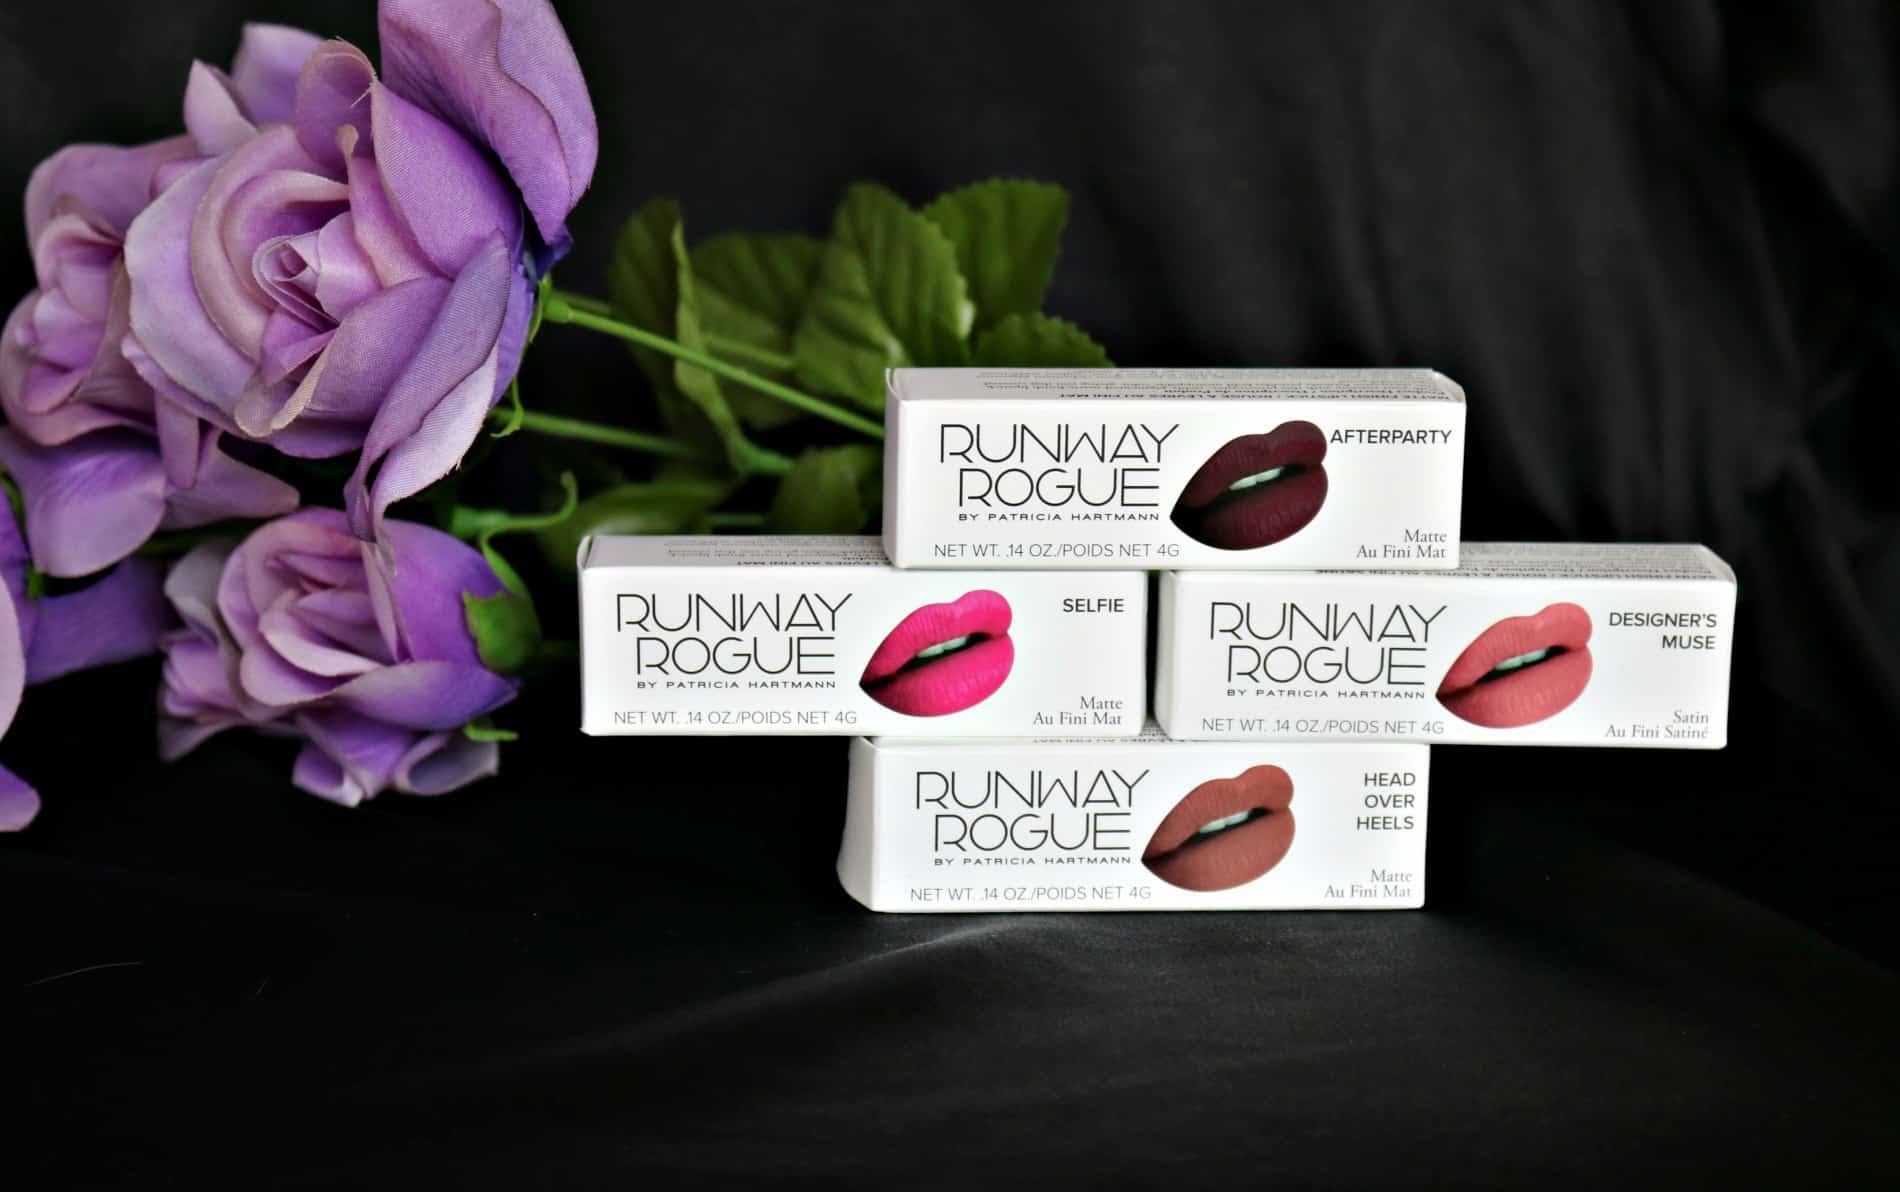 Lipsticks from Runway Rogue by Patricia Hartmann